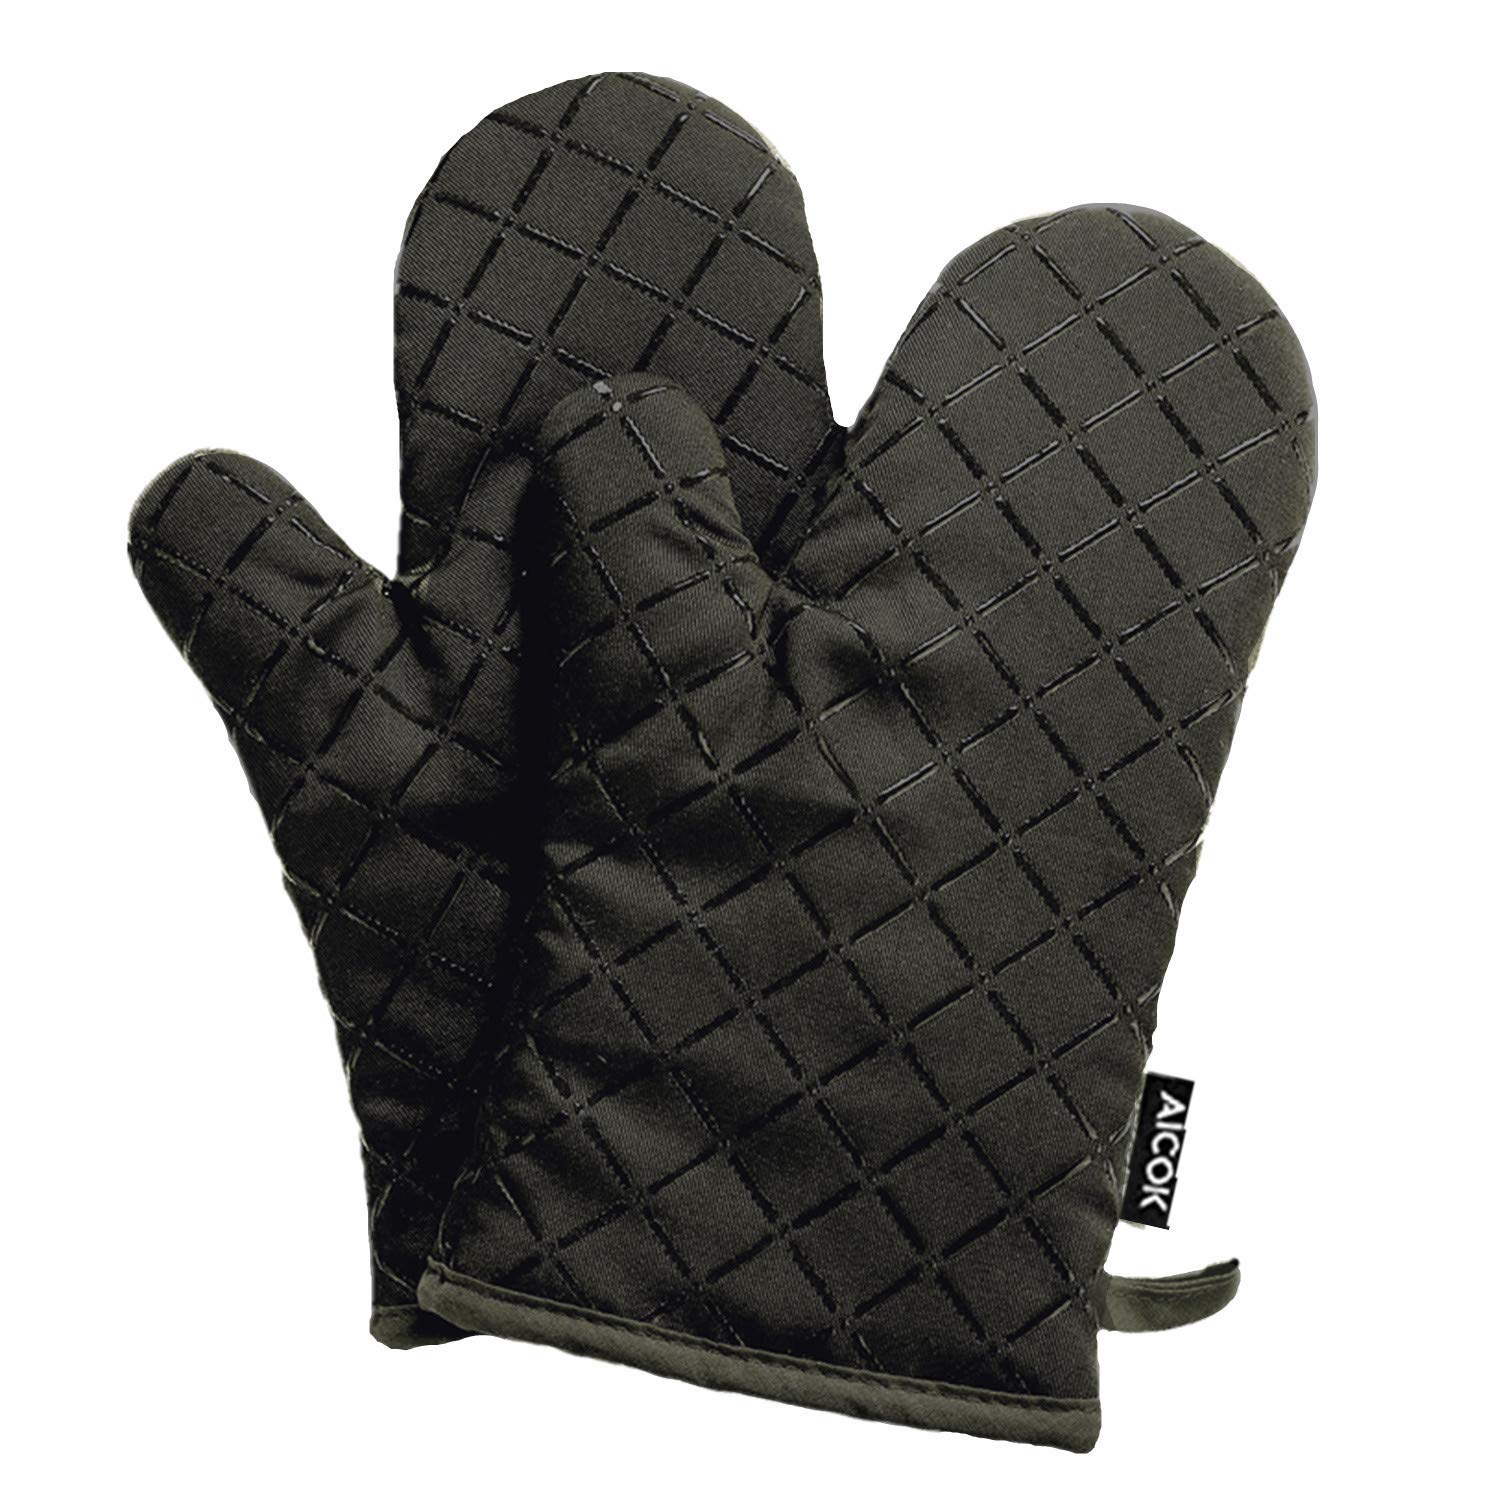 AICOK Oven Mitts, Heat Resistant Oven Gloves, Non-Slip Cooking Gloves, for BBQ, Baking, Barbecue Potholder, Black